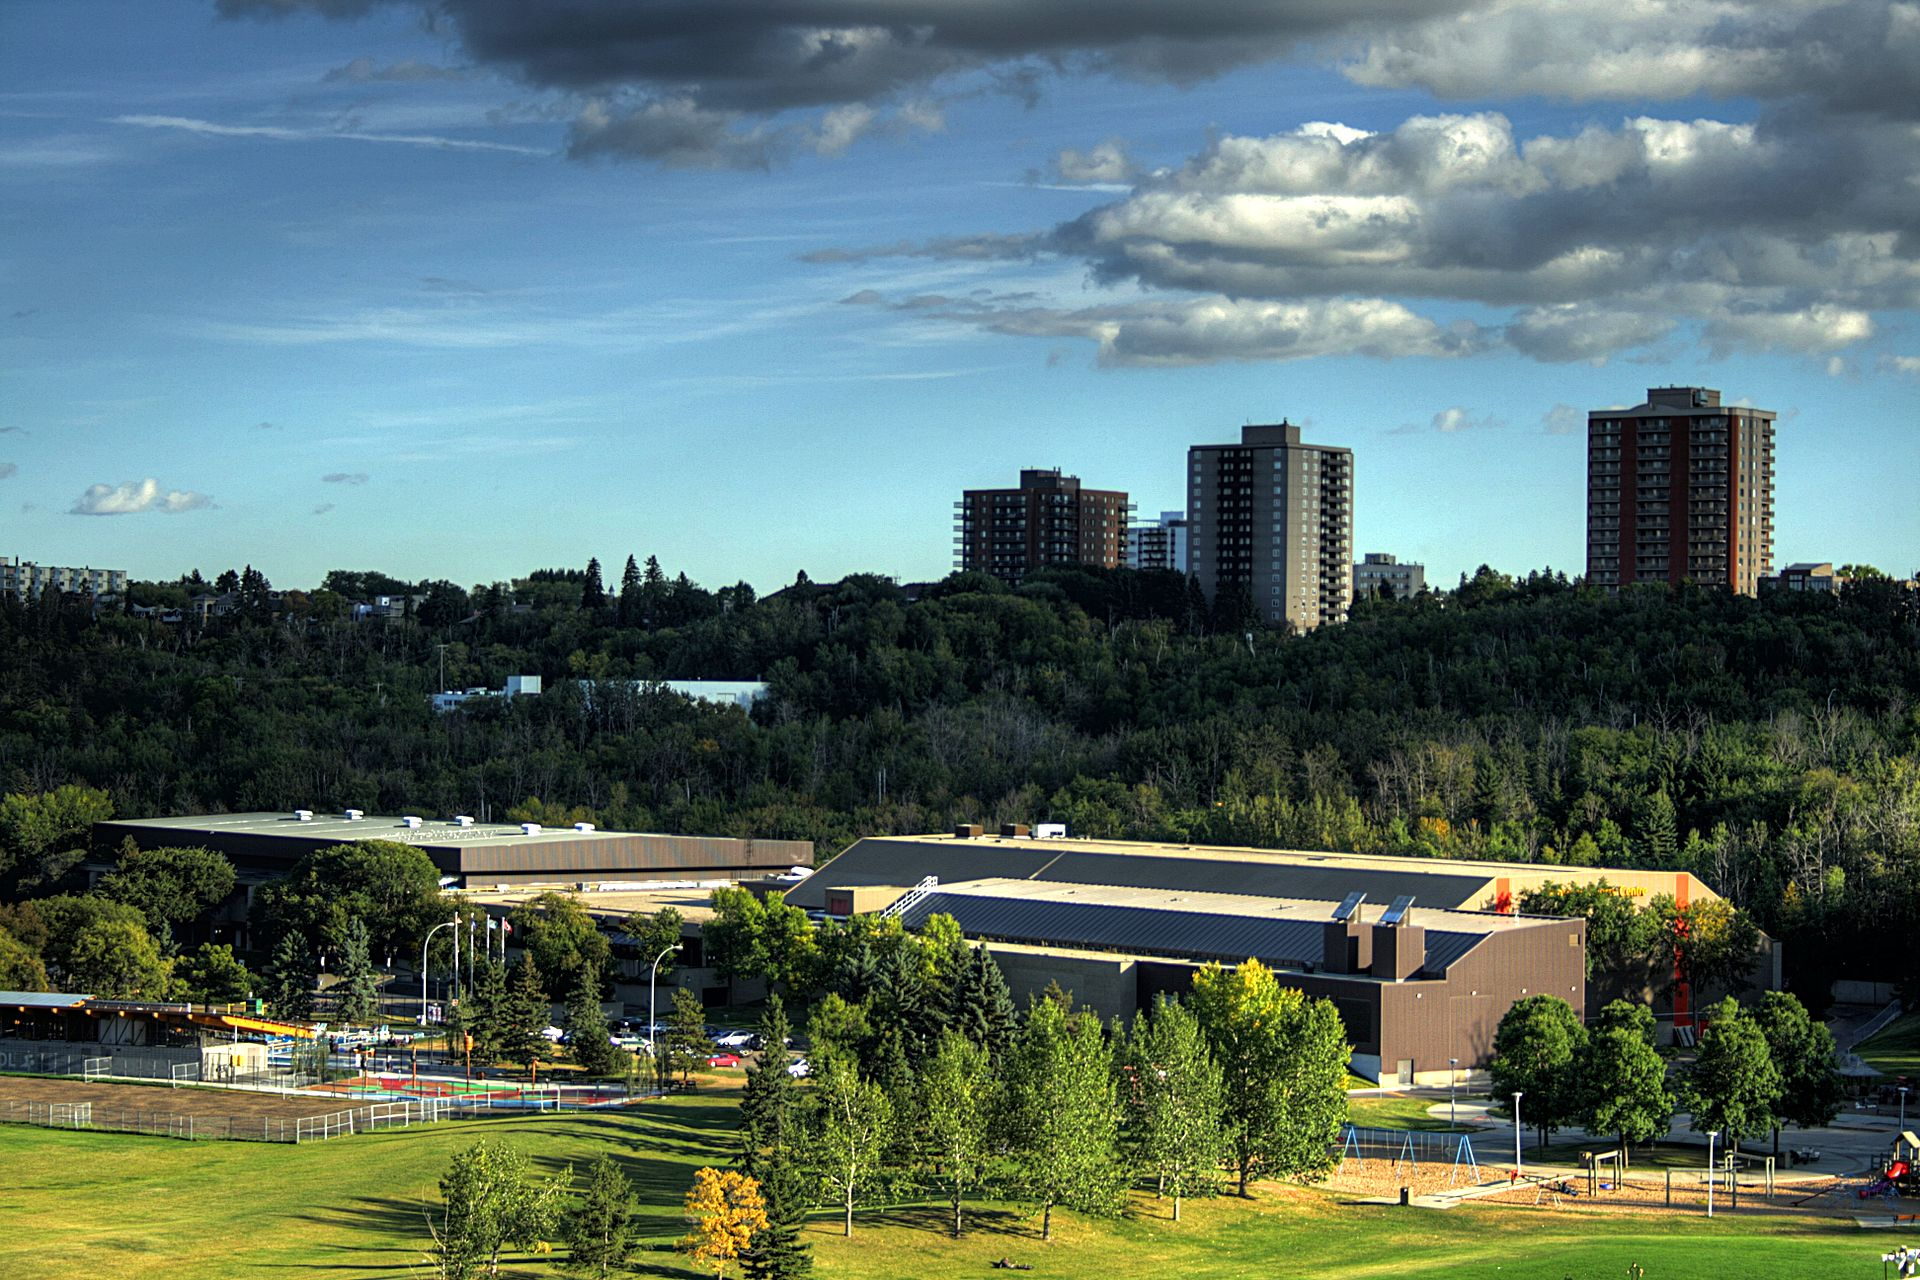 The Kinsmen Sports Centre is one of the proposed venues for the Commonwealth Games should Edmonton 2022 win the bid ©Wikipedia